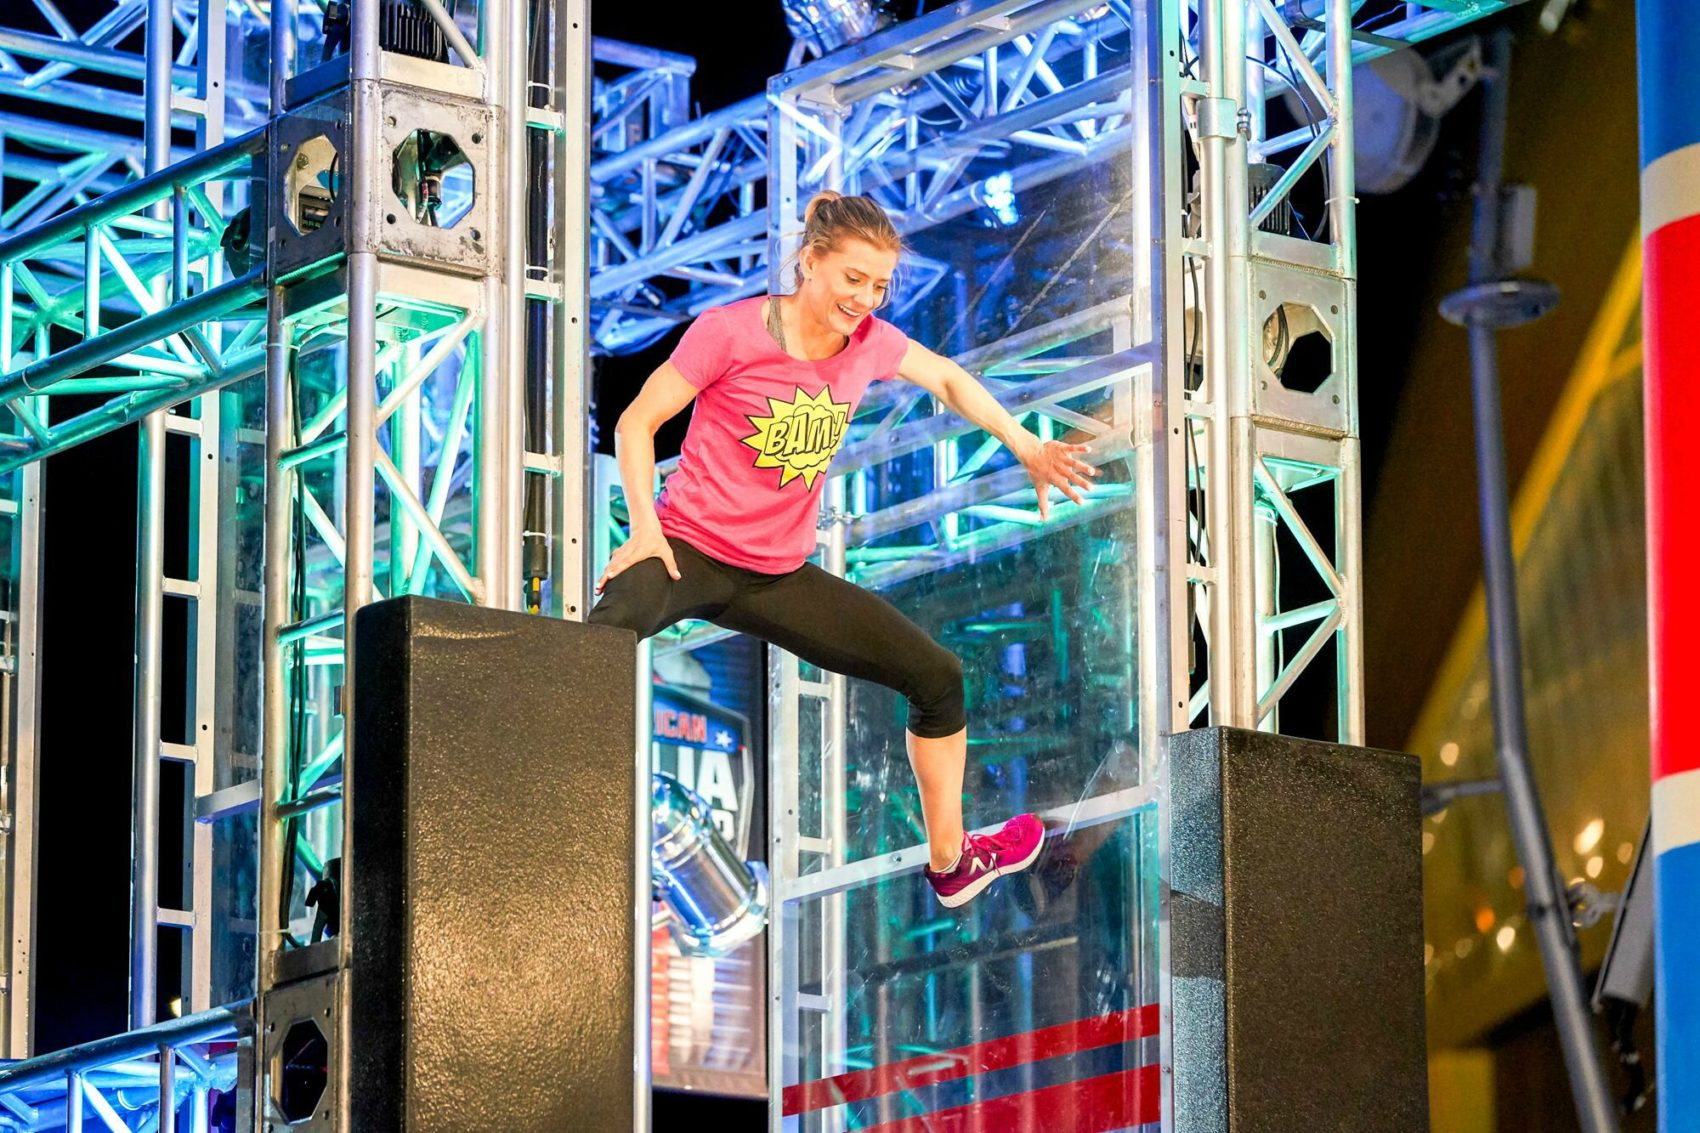 """Mindy Hylton competes in the Atlanta qualifiers for """"American Ninja Warrior"""" on NBC. (Quantrell Colbert/NBC)"""